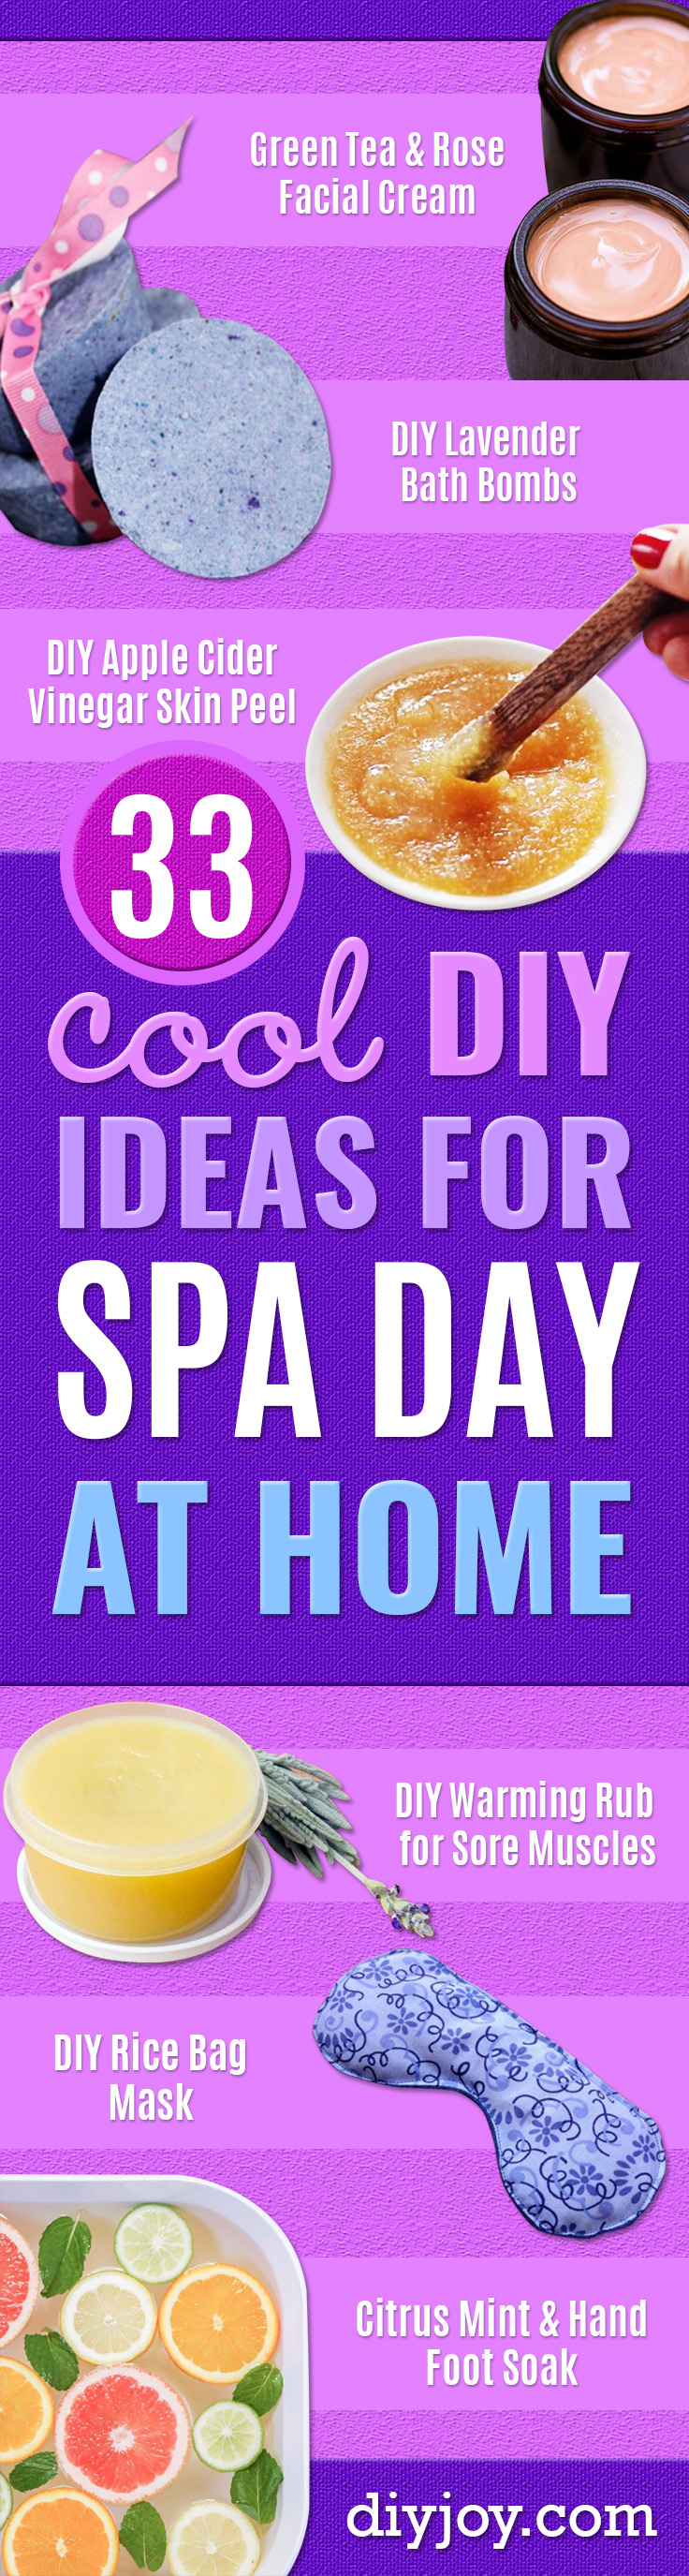 DIY Spa Day Ideas - Luxurious DIY Spa Night at Home - Easy Sugar Scrubs, Lotions and Bath Ideas for The Best Pampering You Can Do At Home - Lavender Projects, Relaxing Baths and Bath Bombs, Tub Soaks and Facials - Step by Step Tutorials for Luxury Bath Products http://diyjoy.com/diy-spa-day-ideas